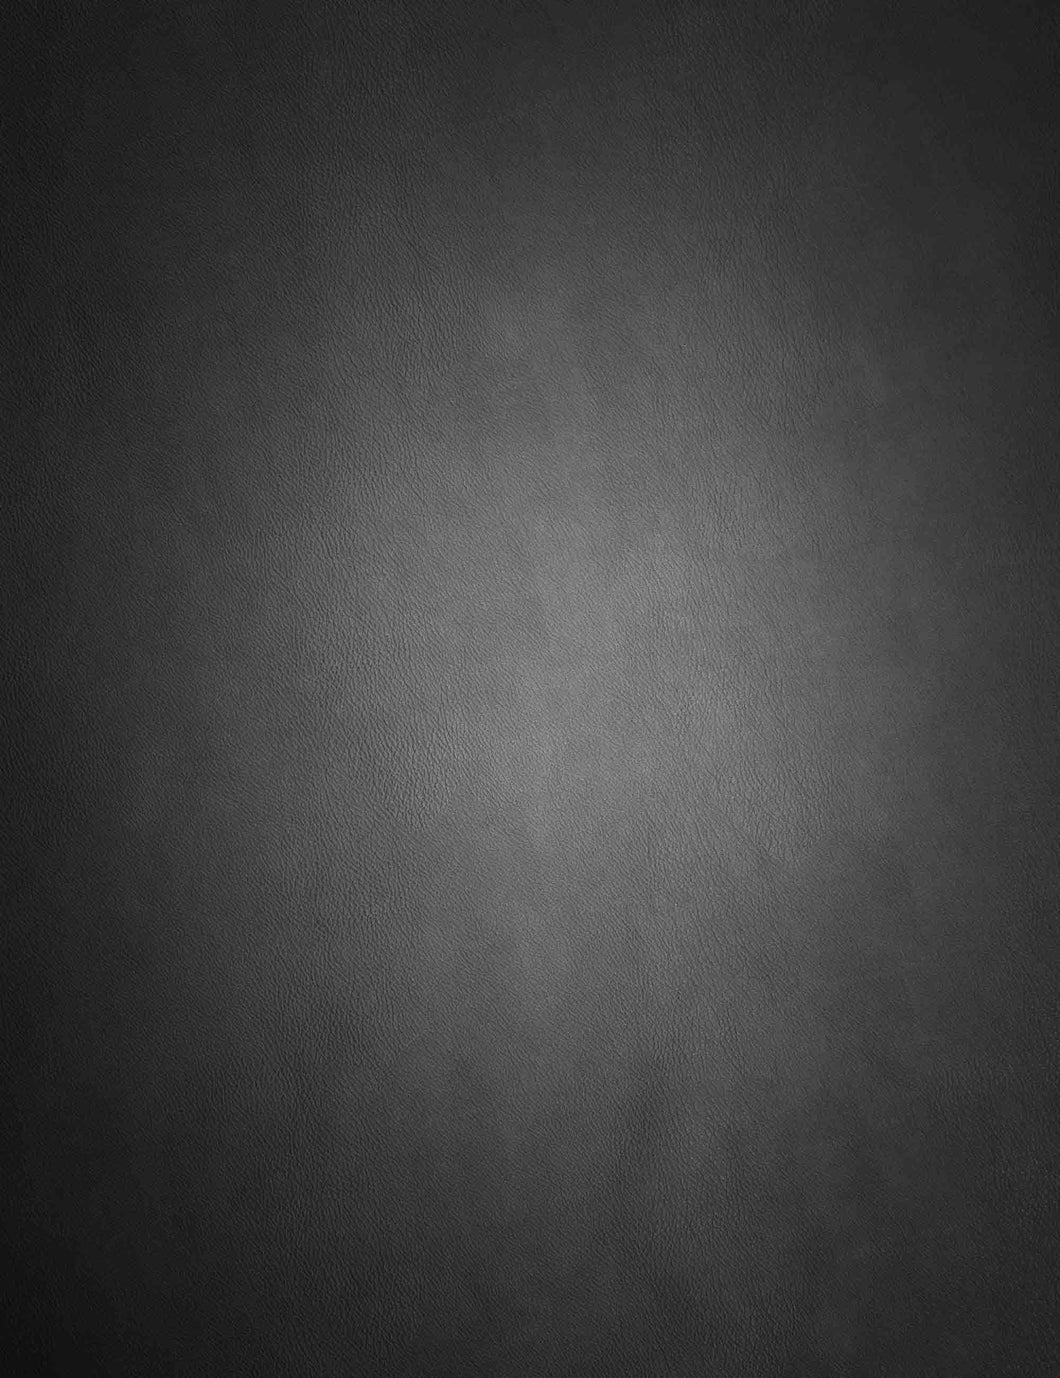 Black With lighter In Center Old Master Printed Backdrop For Photography - Shop Backdrop